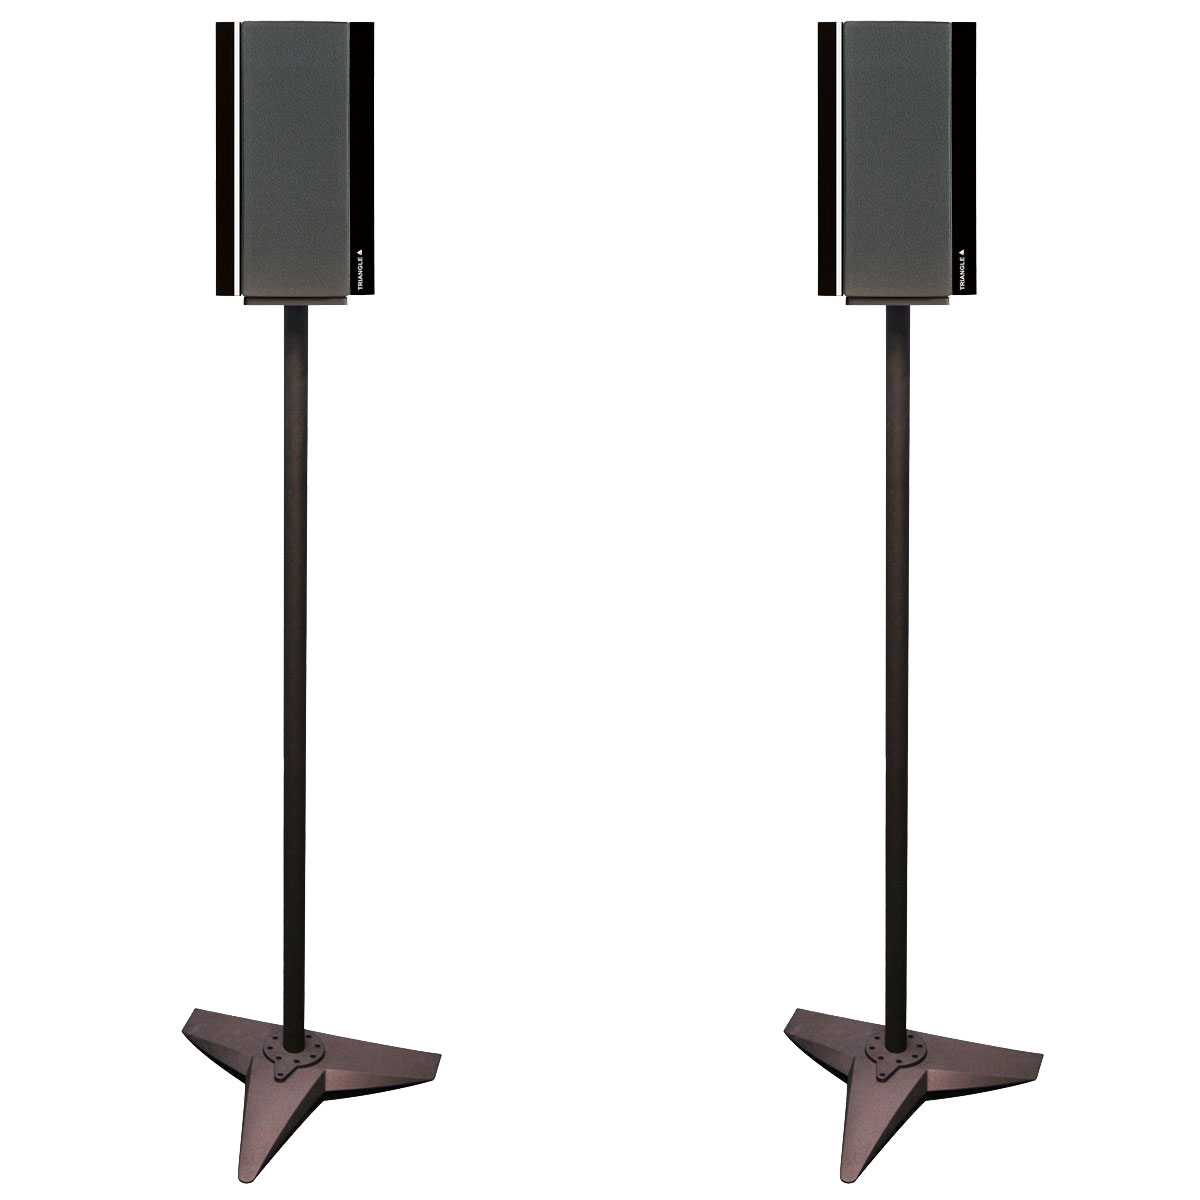 triangle pieds galaxy noir pied support enceinte triangle sur. Black Bedroom Furniture Sets. Home Design Ideas